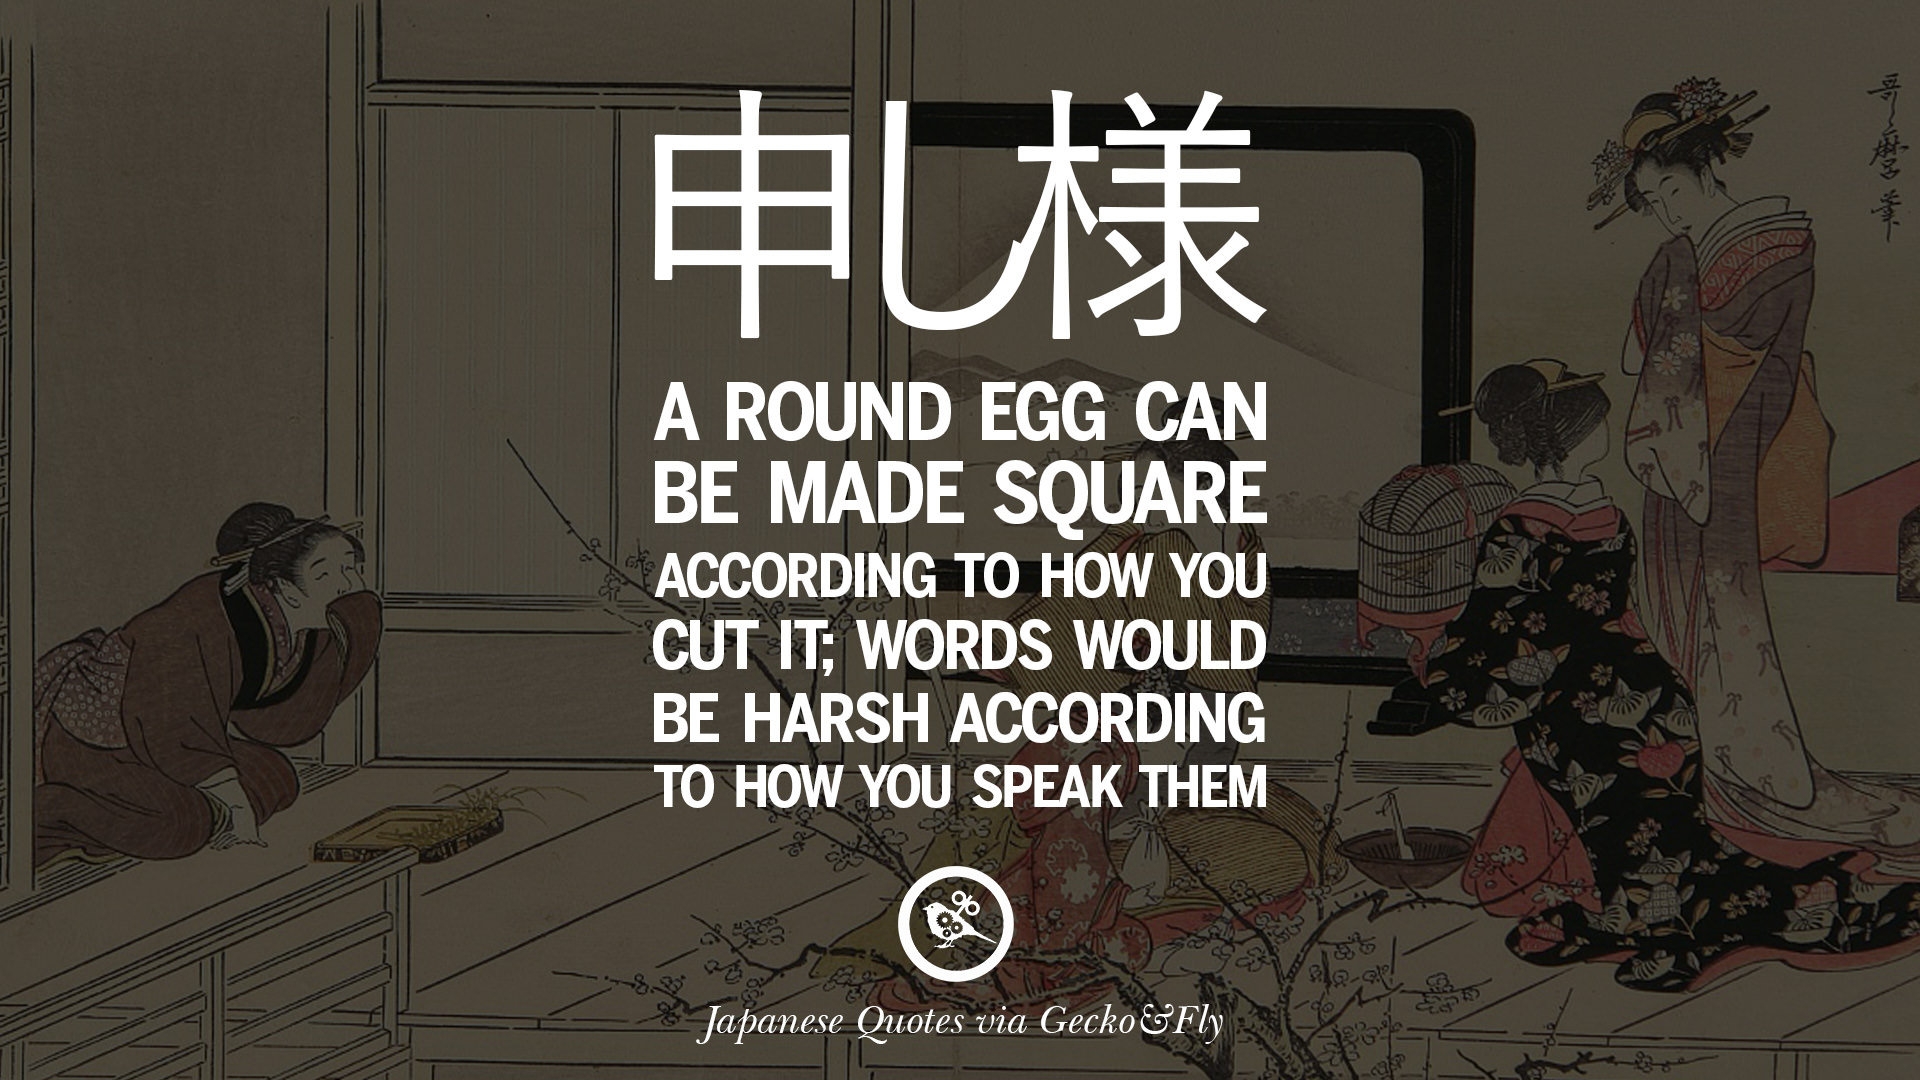 A round egg can be made square according to how you cut it words would be harsh according to how you speak them